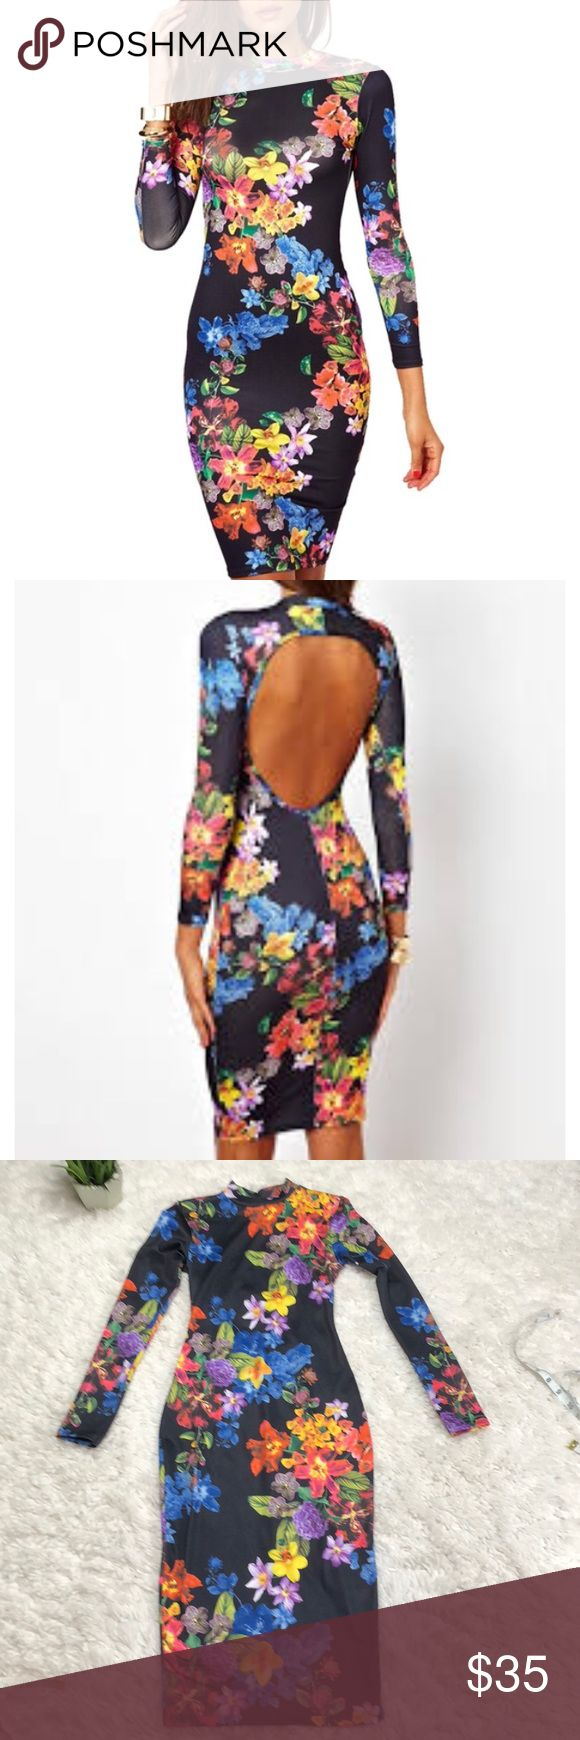 Asos 'petite' body con long sleeve midi dress Sexy body hugging open back floral high neck midi dress. Petite on label but longer length can fit regular size 0 or xs as well  Sexy date night girls night out party dress ASOS Dresses Long Sleeve